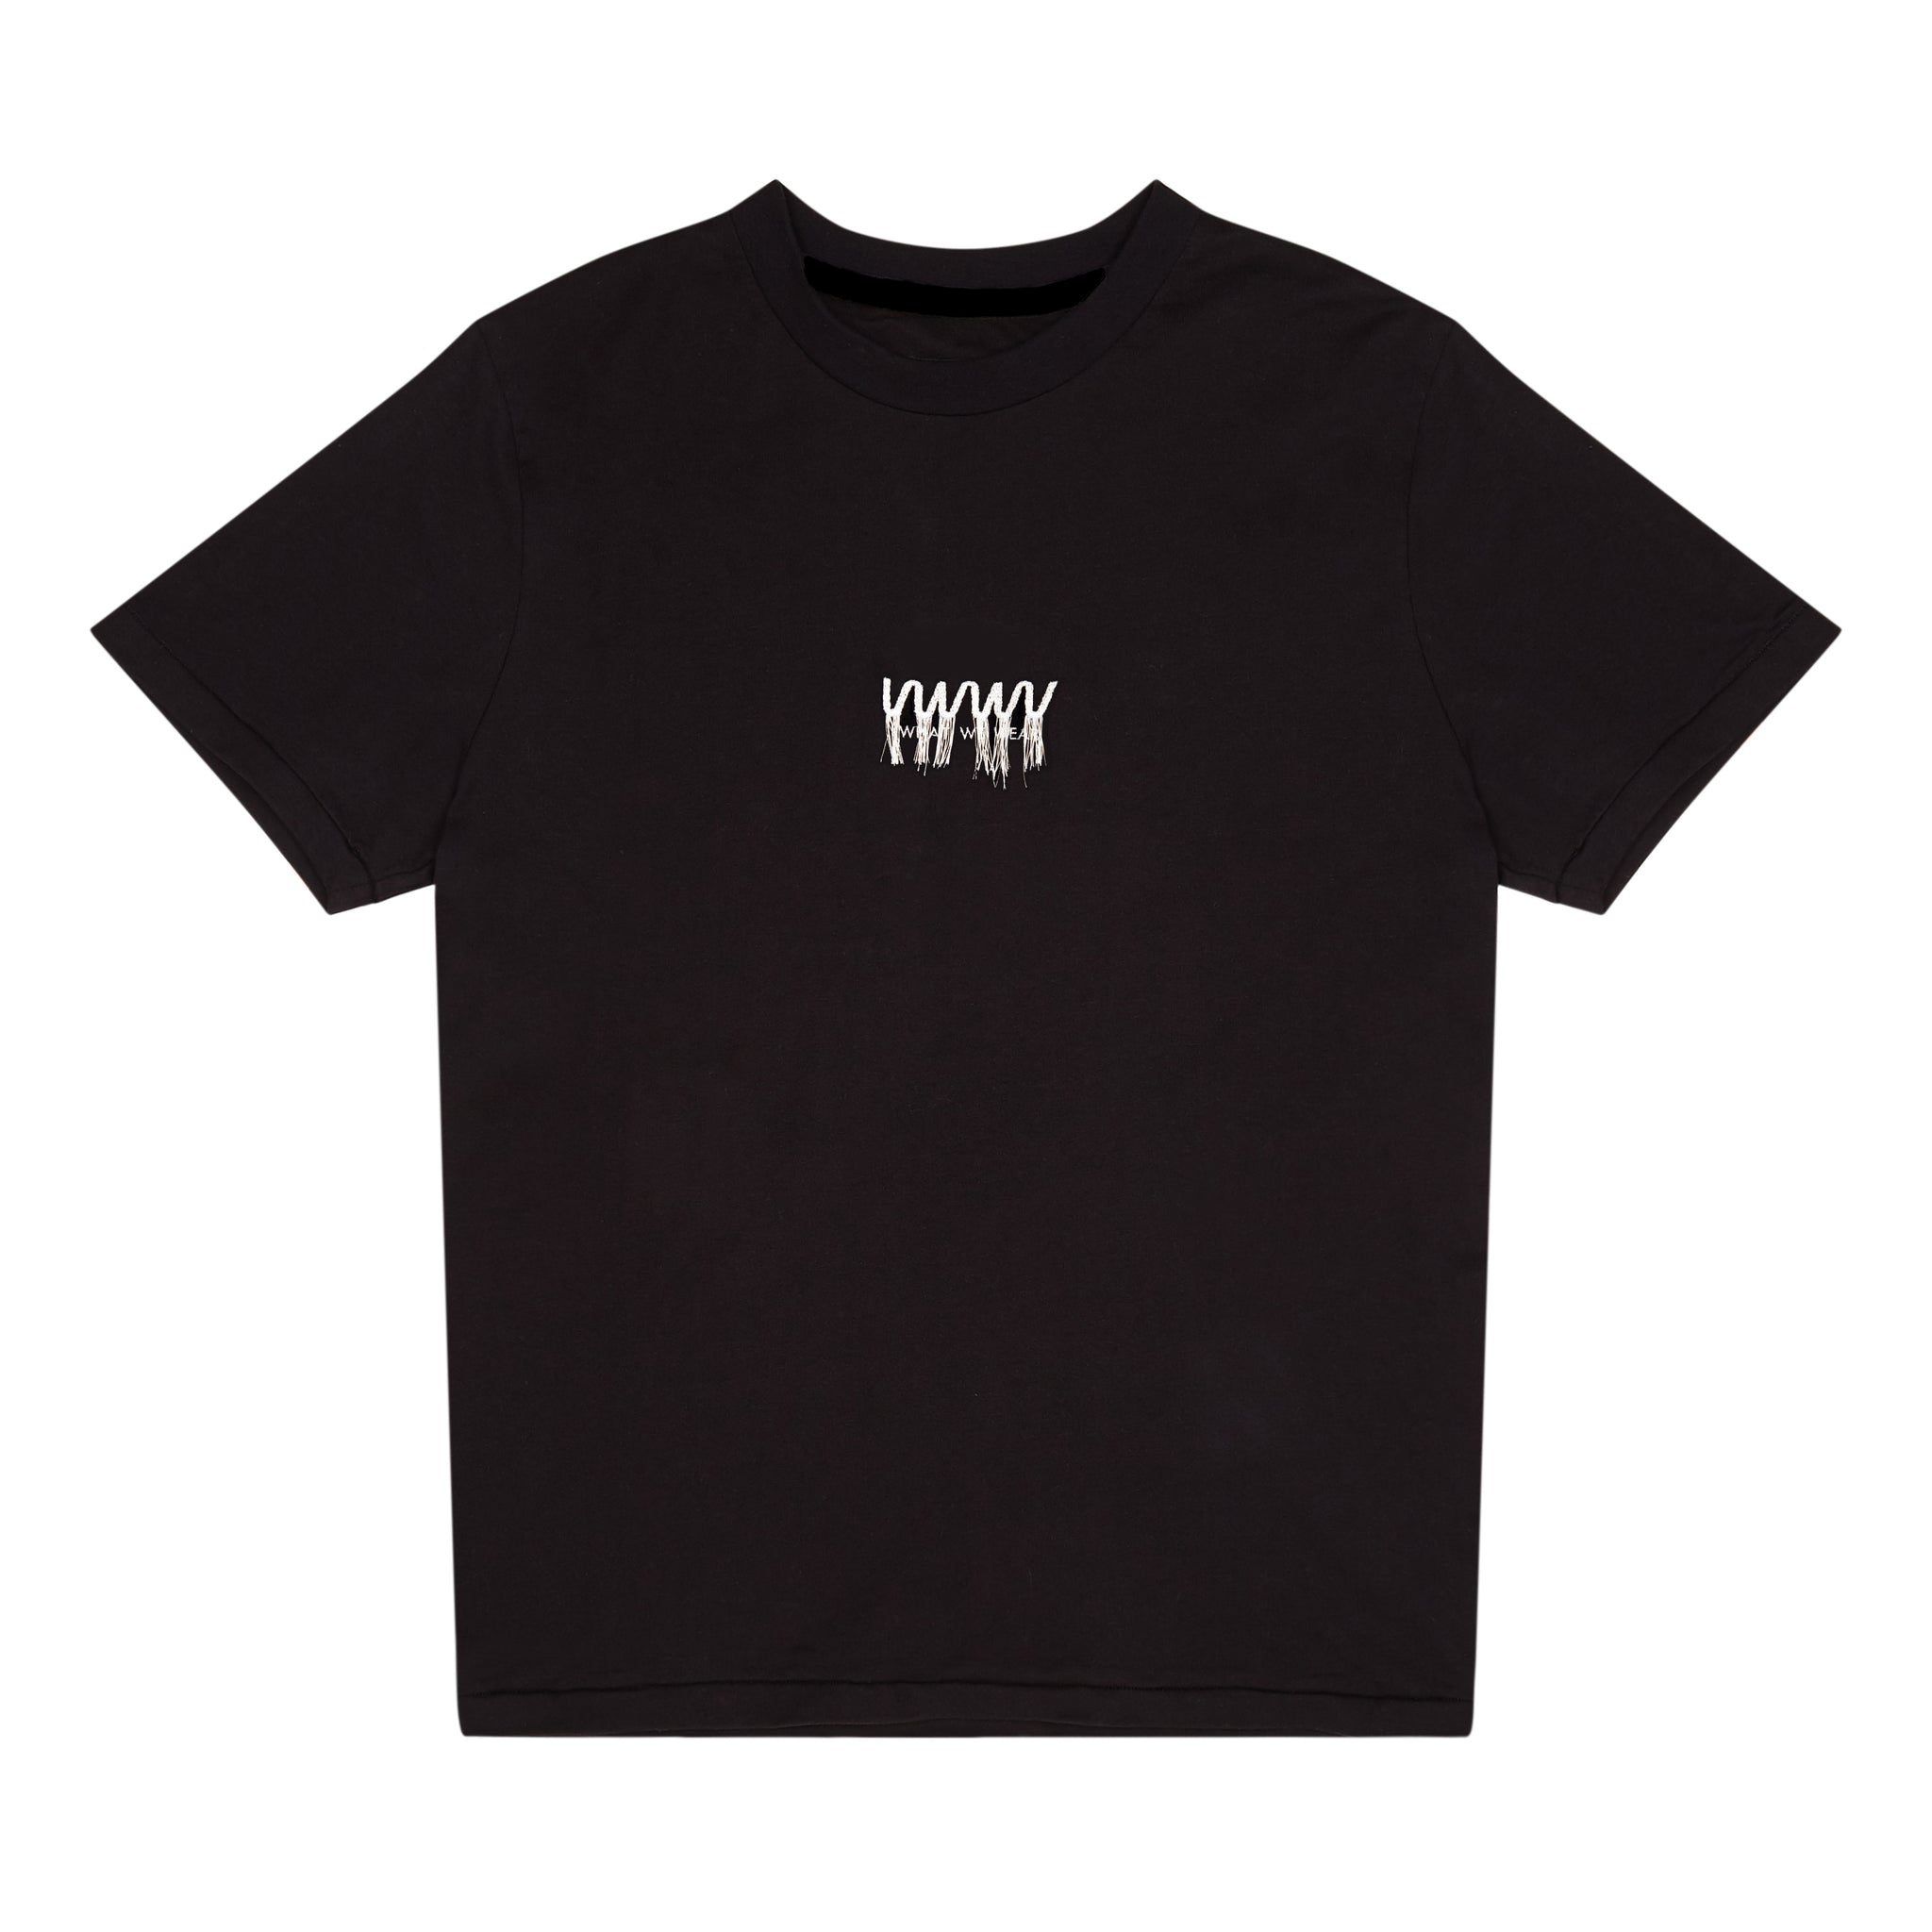 'WWW' Loose Threaded Embroidery Logo T-shirt